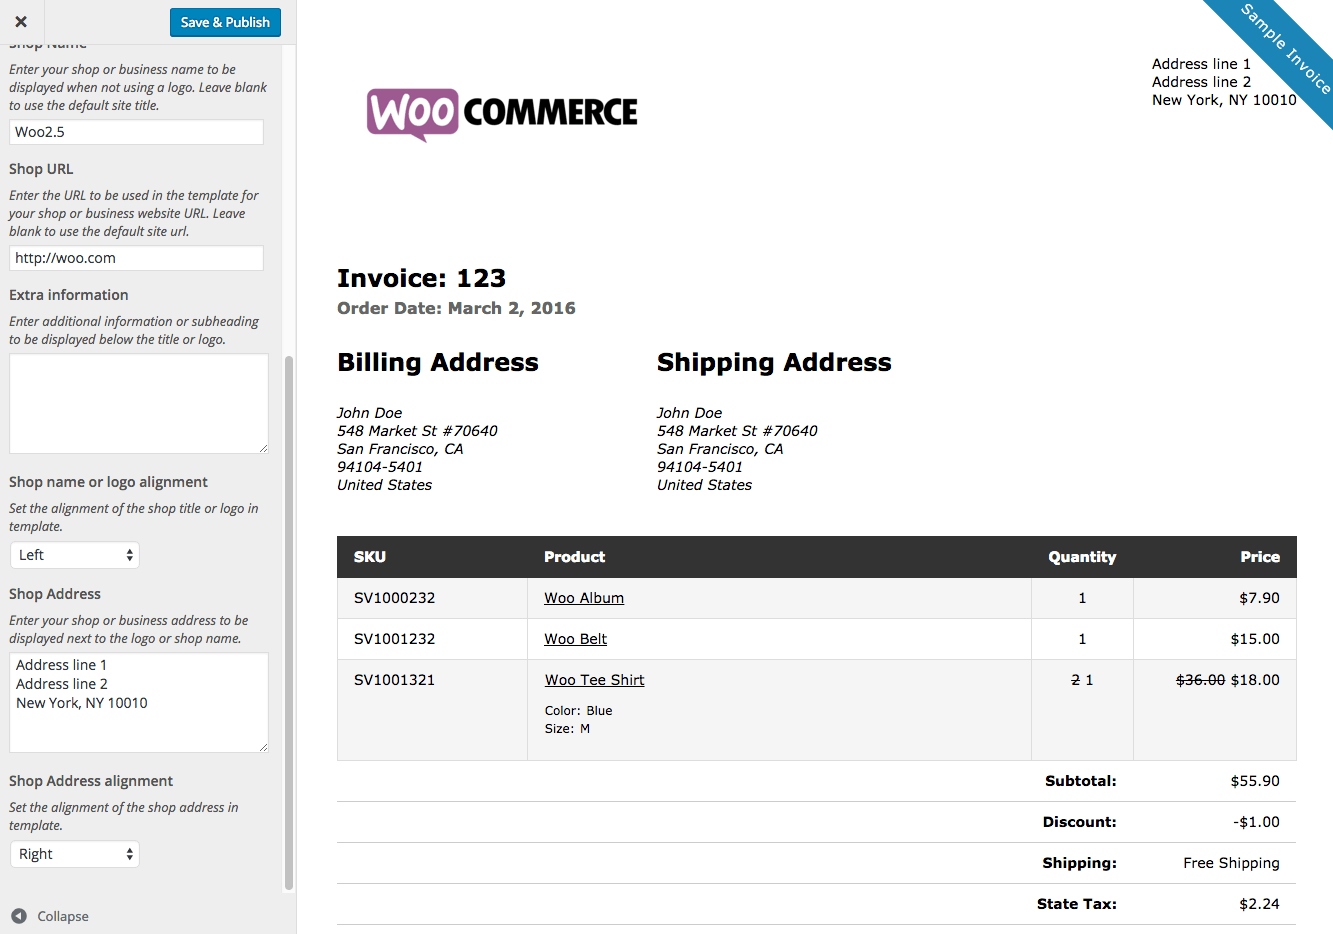 Pigbrotherus  Gorgeous Woocommerce Print Invoices Amp Packing Lists  Woocommerce Docs With Magnificent Woocommerce Print Invoices  Packing Lists Customizer With Comely Create Online Invoice Also Invoice Envelopes In Addition Free Online Invoice Maker And Cleaning Service Invoice As Well As Donation Invoice Additionally Web Hosting Invoice From Docswoocommercecom With Pigbrotherus  Magnificent Woocommerce Print Invoices Amp Packing Lists  Woocommerce Docs With Comely Woocommerce Print Invoices  Packing Lists Customizer And Gorgeous Create Online Invoice Also Invoice Envelopes In Addition Free Online Invoice Maker From Docswoocommercecom